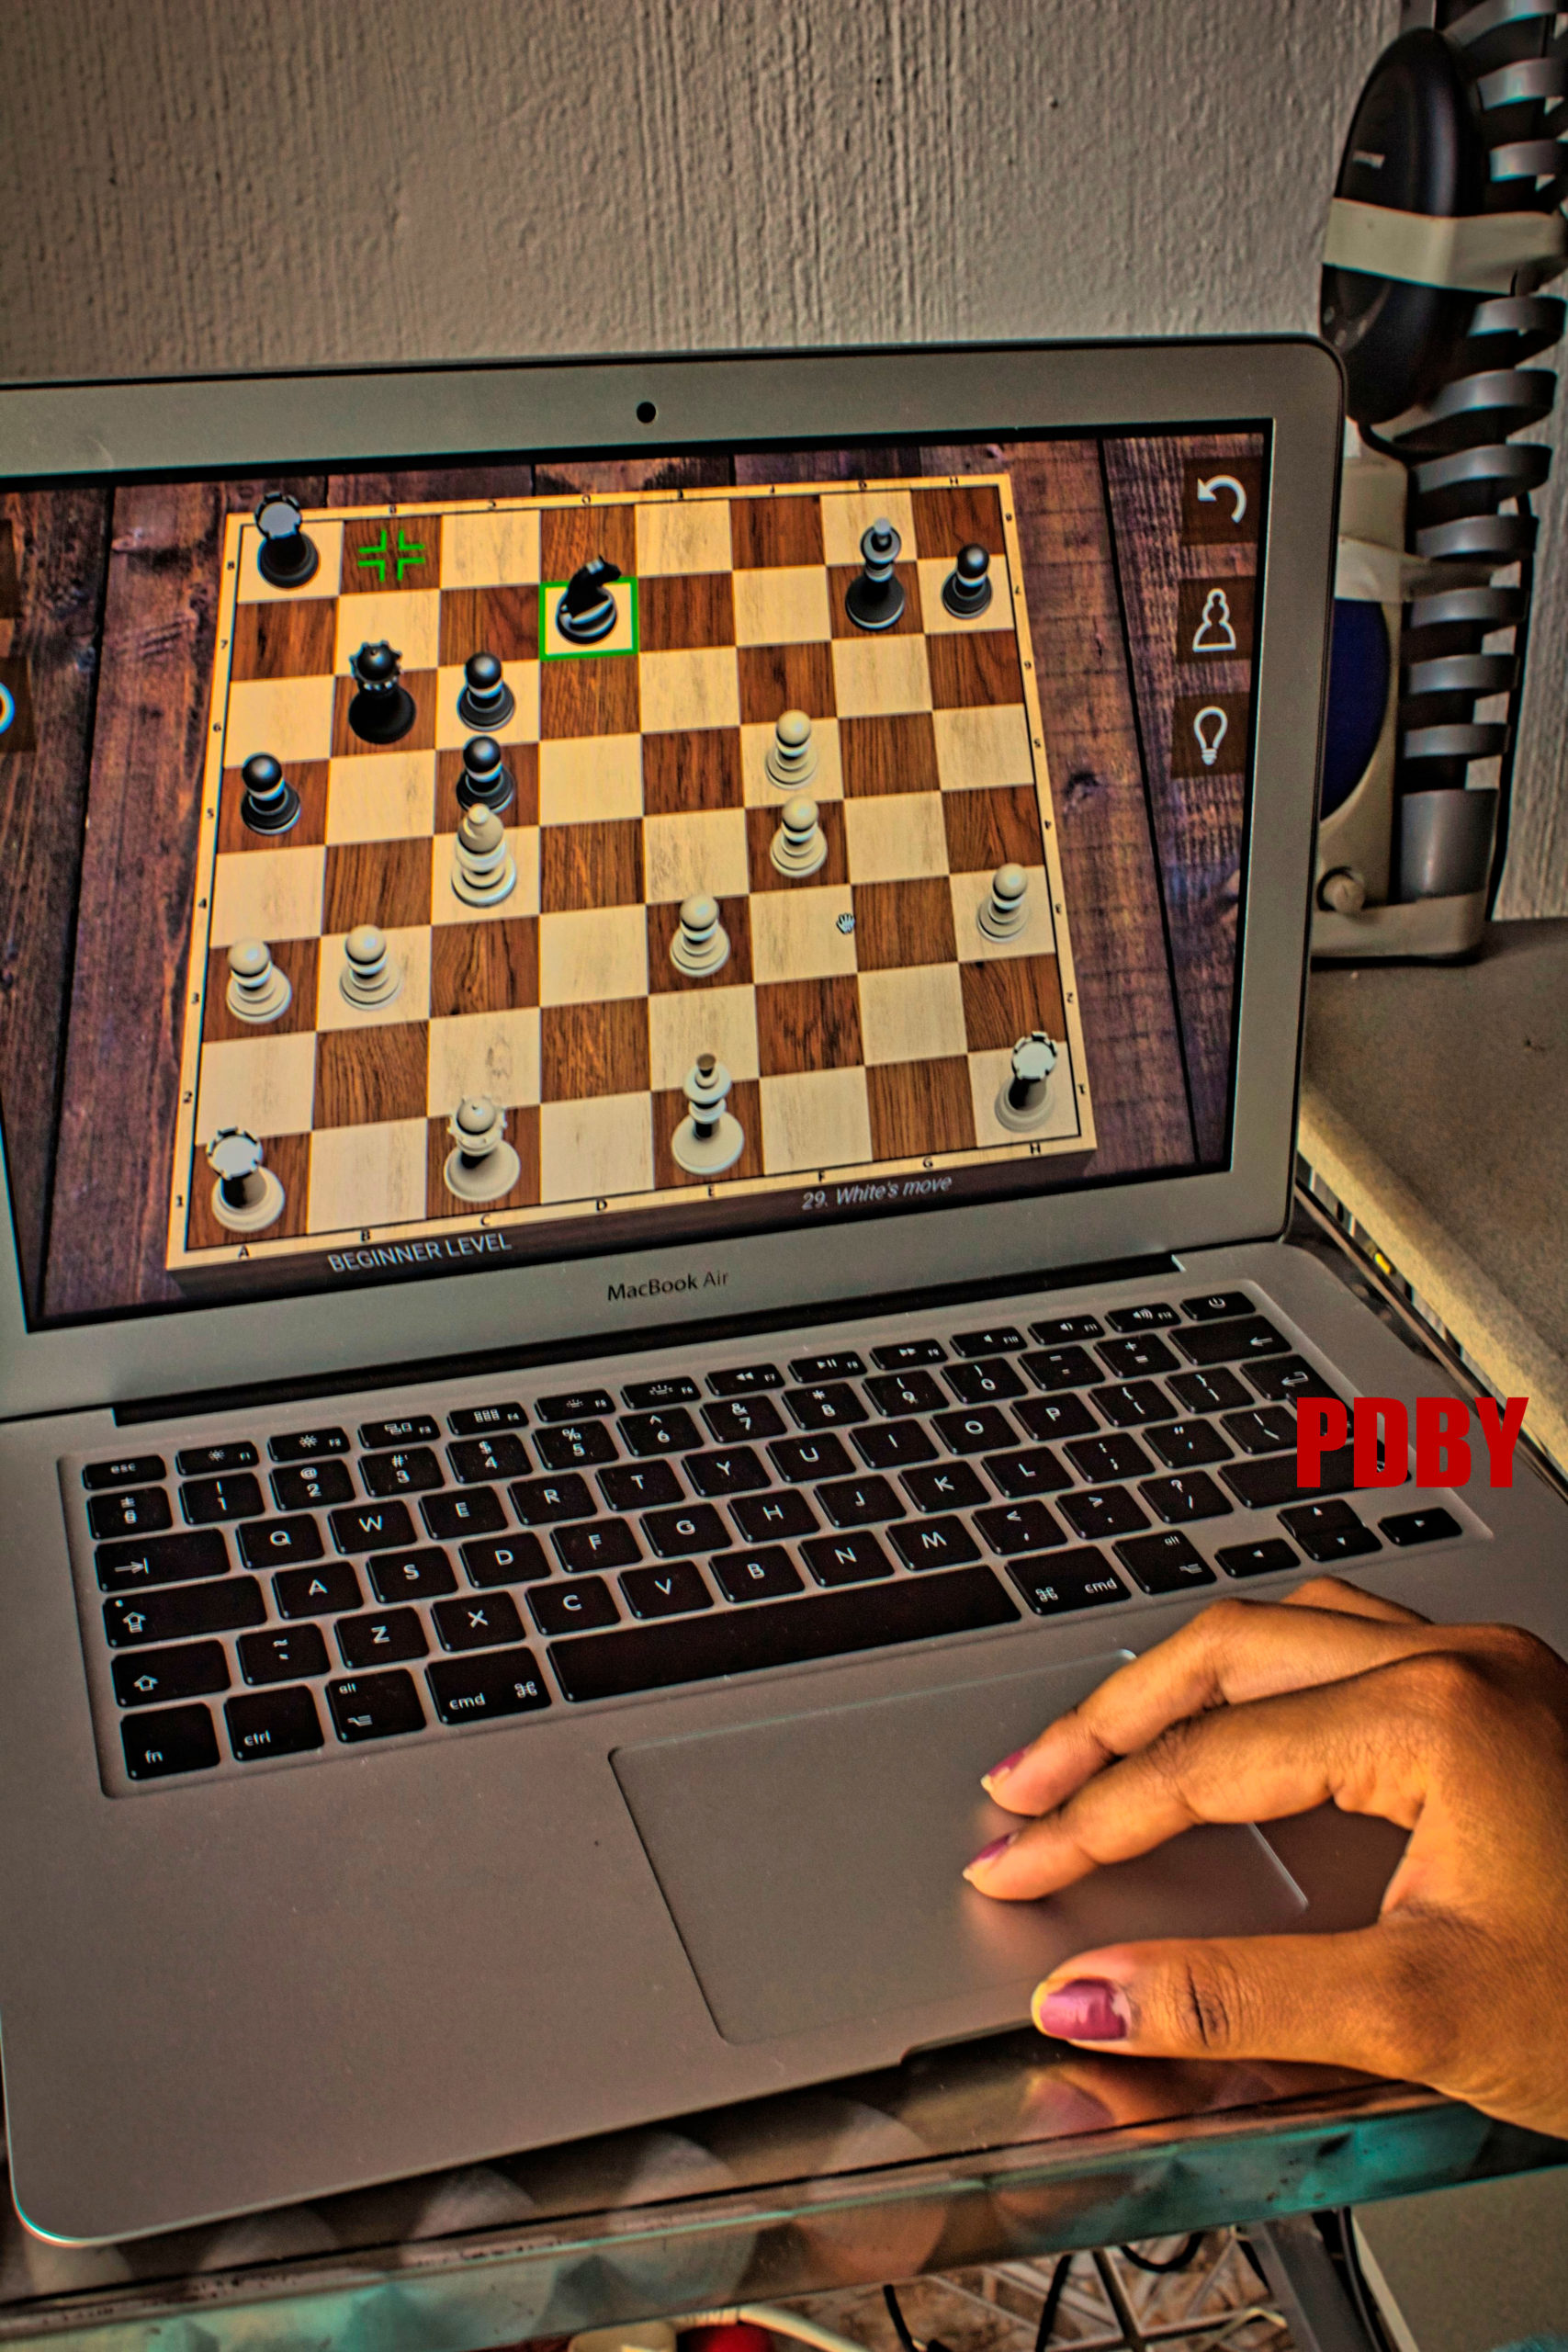 UP hosts chess online